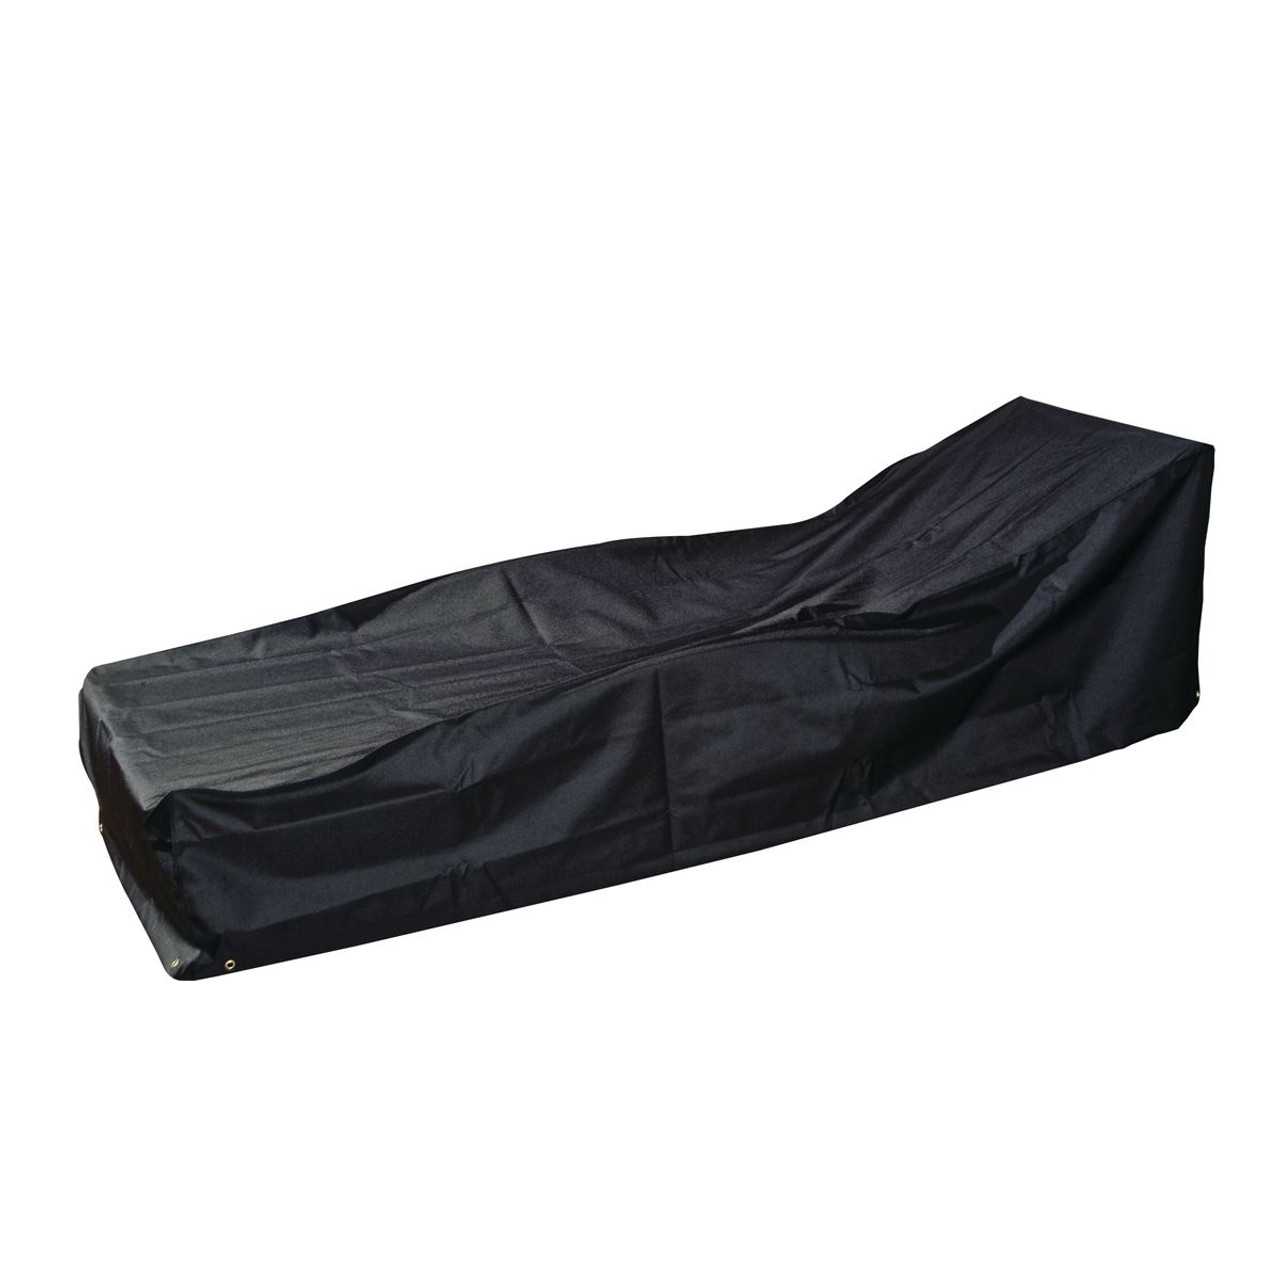 Bosmere Protector 6000 Sunbed Cover Storm Black